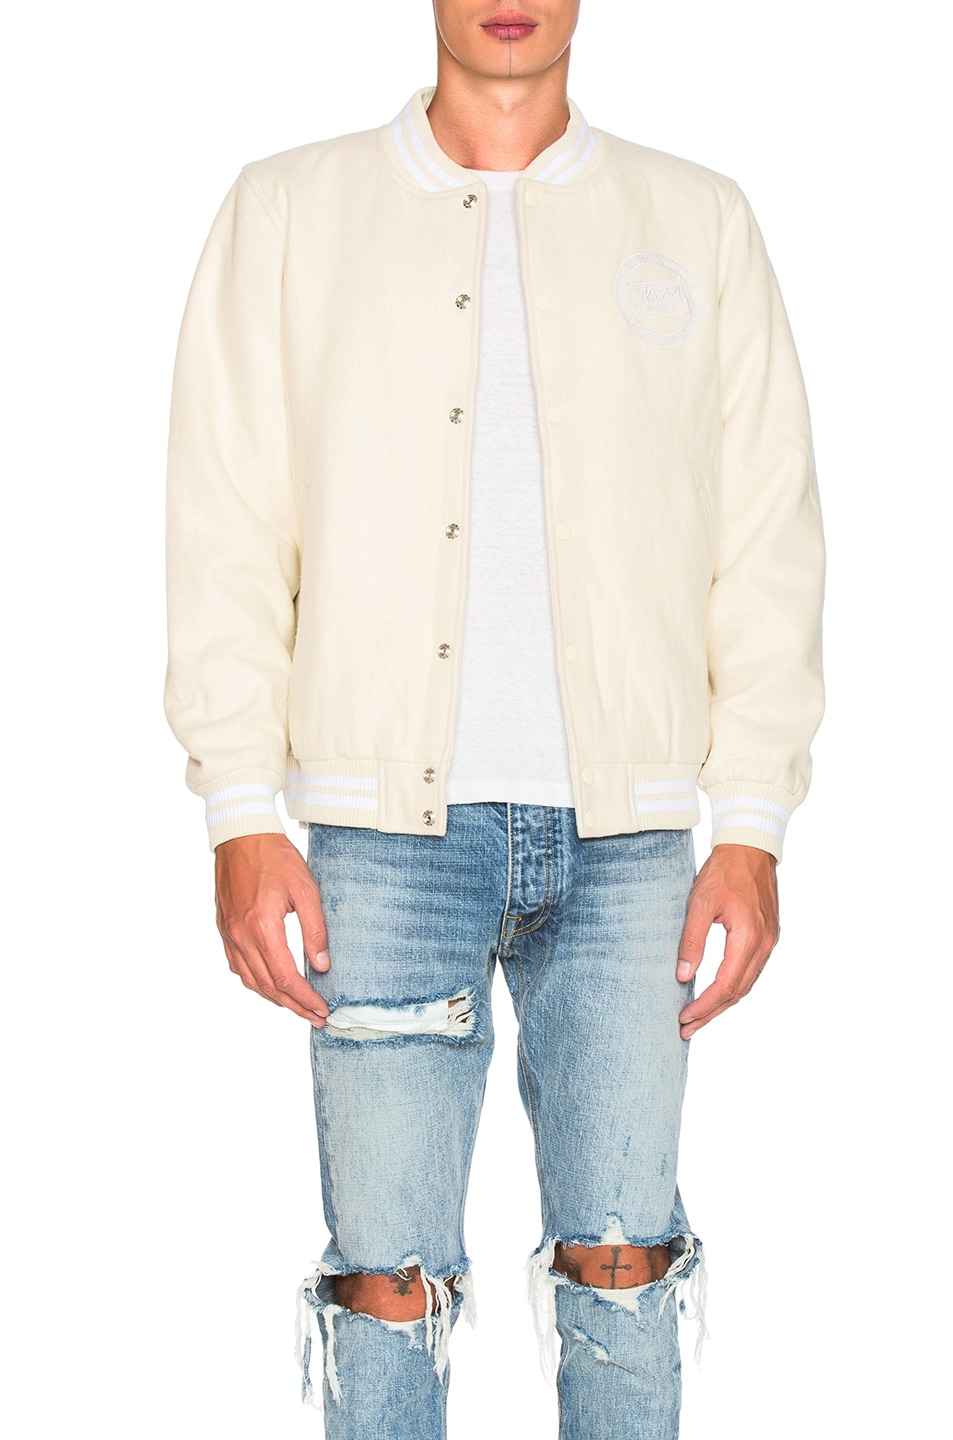 a94f506e23a5 Image 2 of Stussy Stock Varsity Jacket in Off White